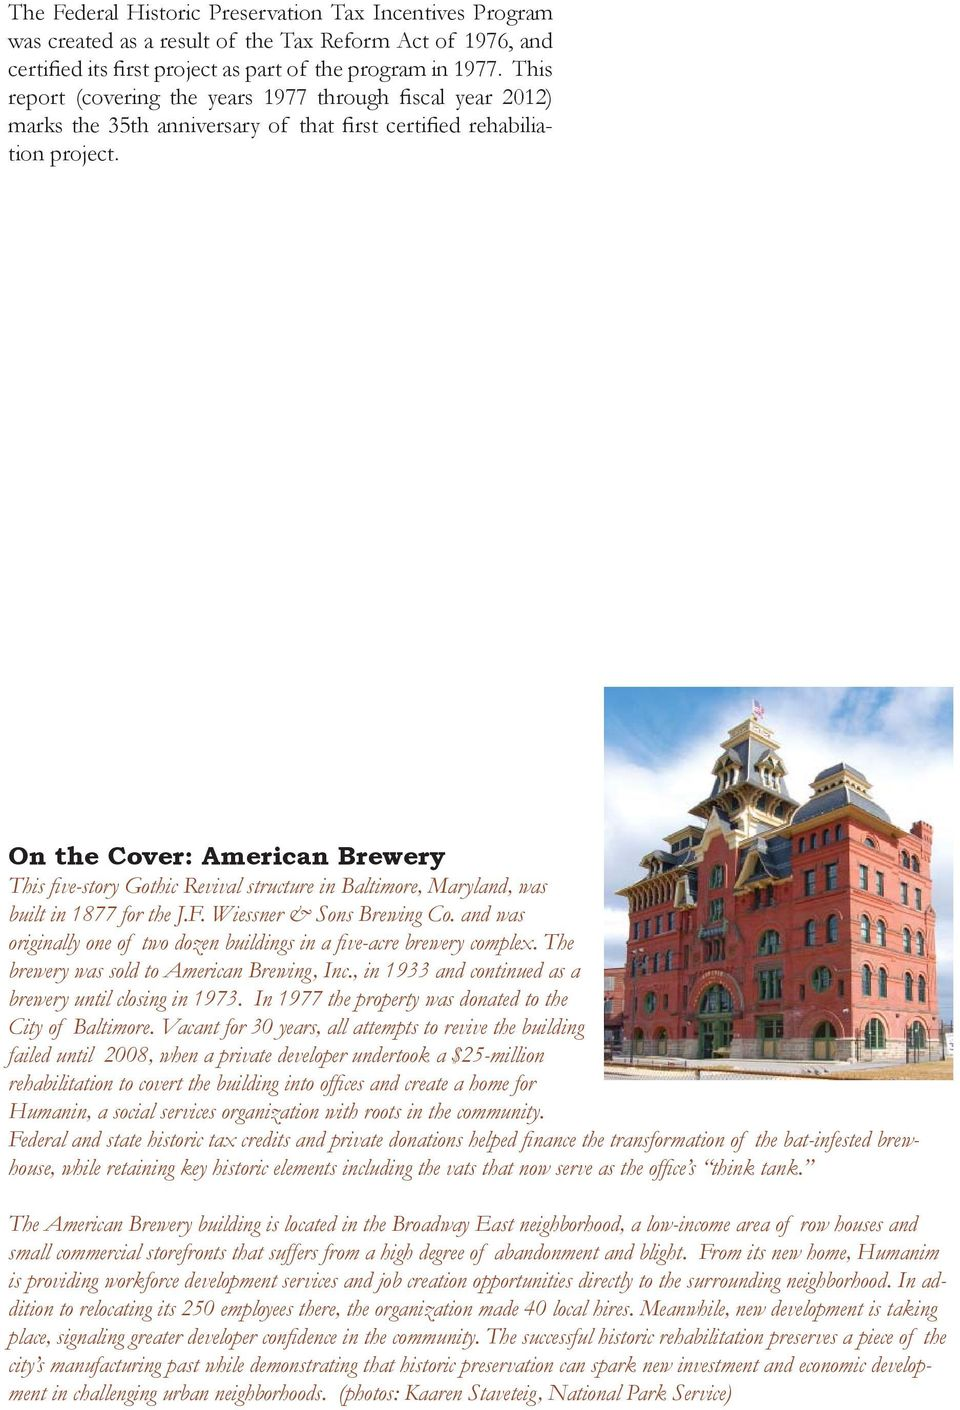 On the Cover: American Brewery This fi ve-story Gothic Revival structure in Baltimore, Maryland, was built in 1877 for the J.F. Wiessner & Sons Brewing Co.